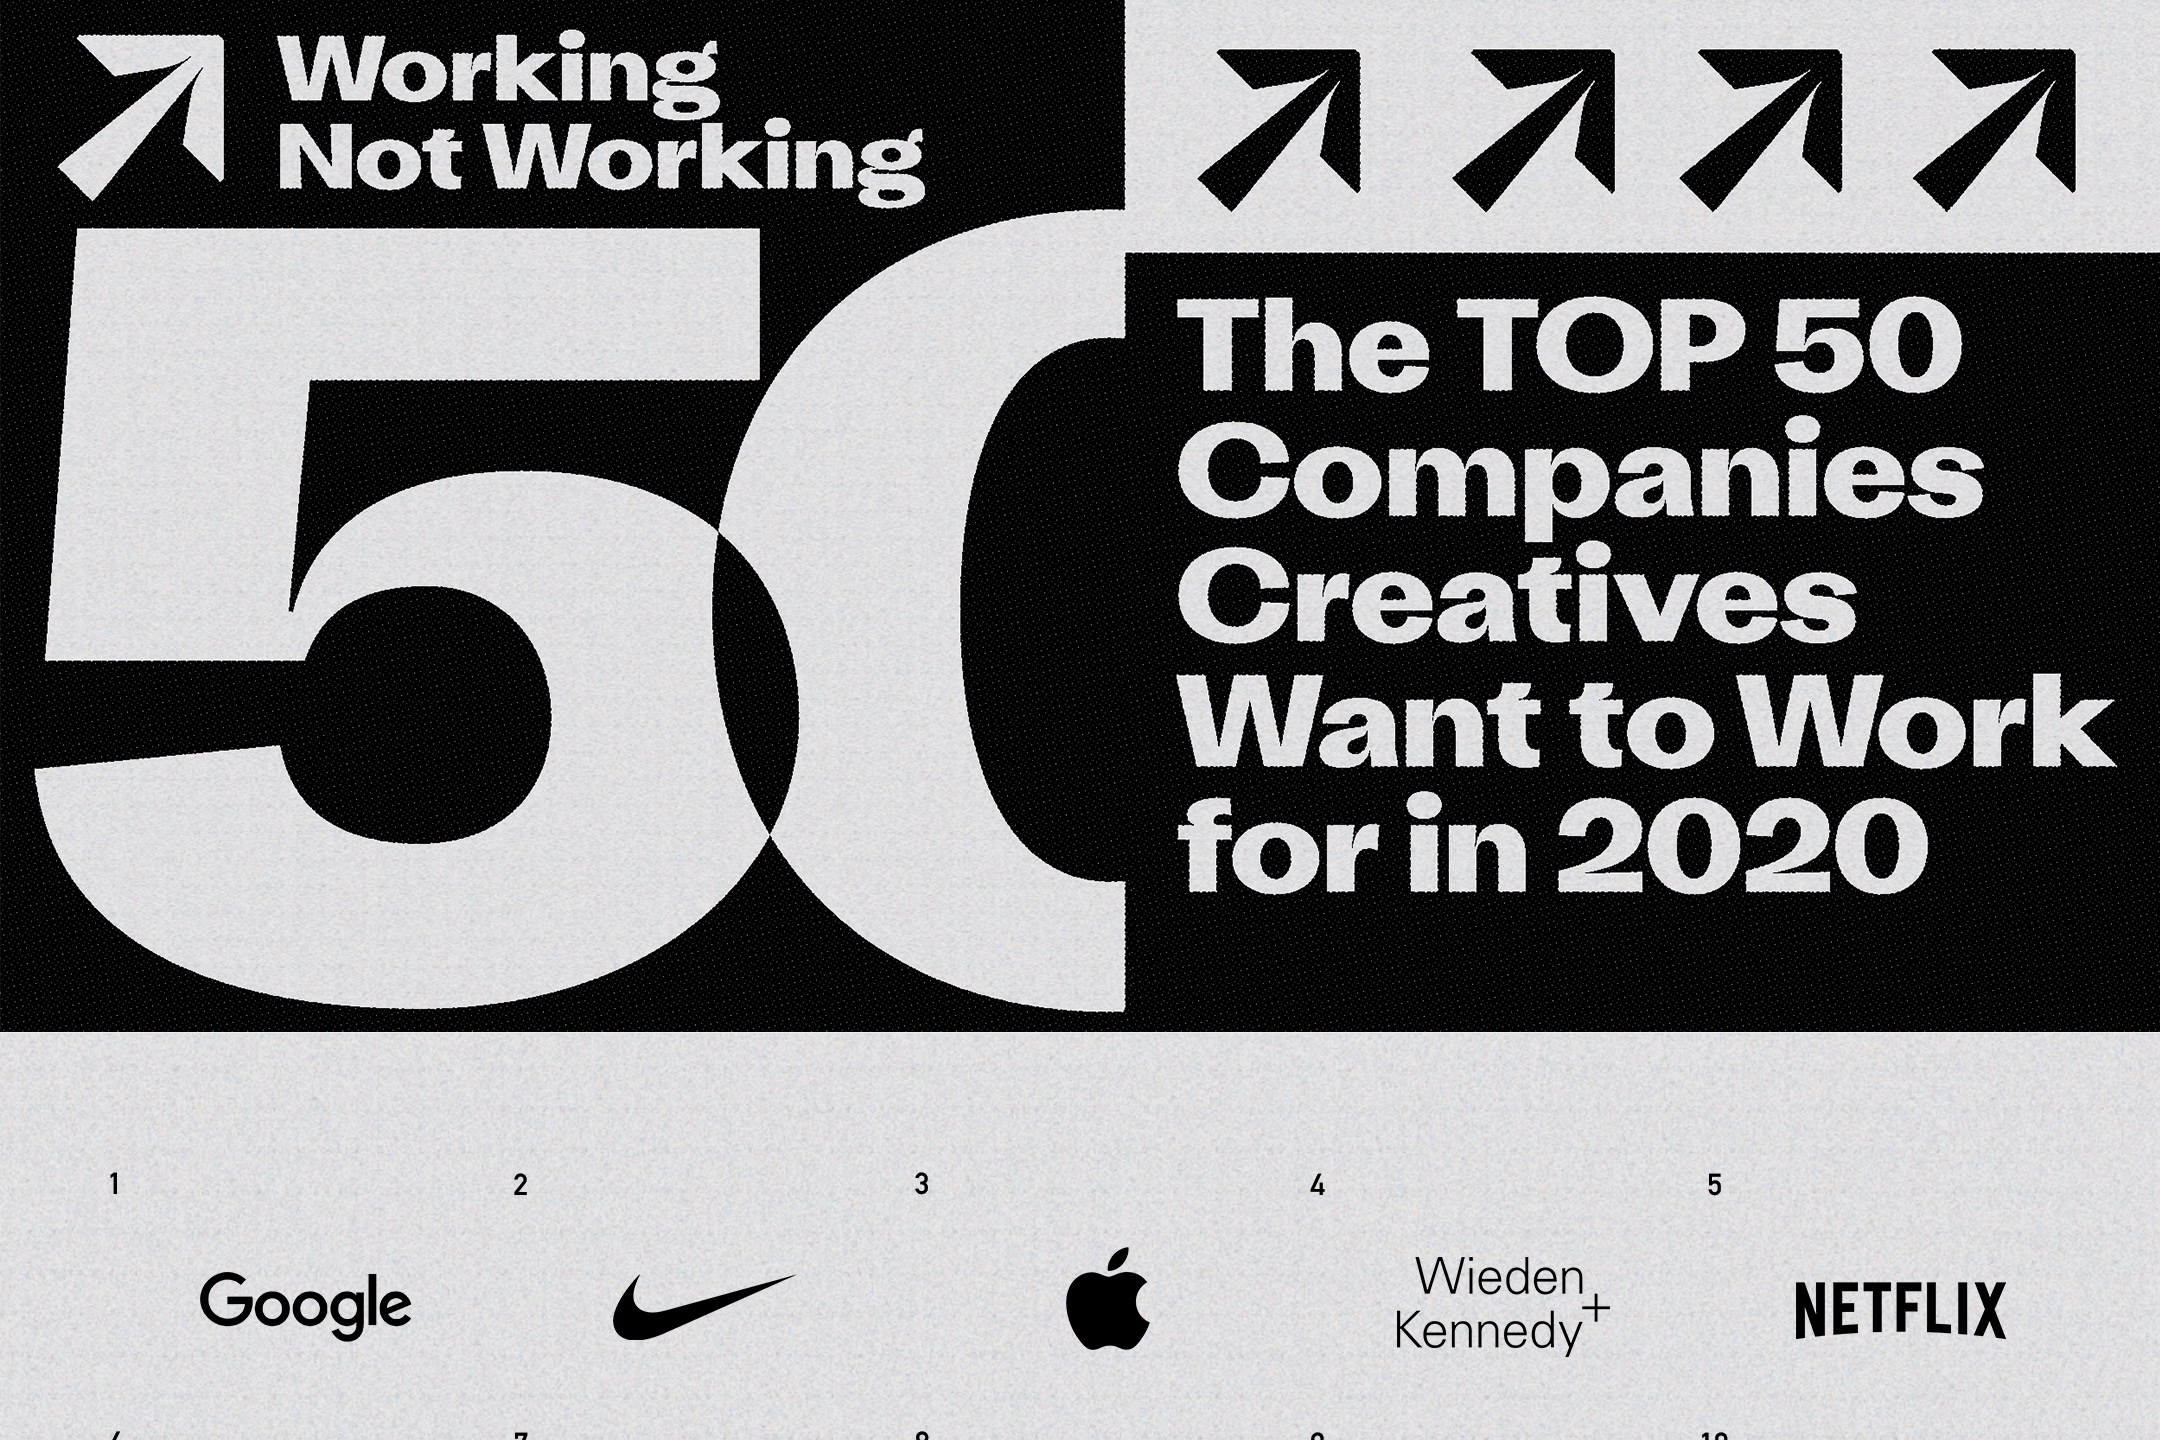 Working Not Working releases its annual list of the top companies creatives want to work for